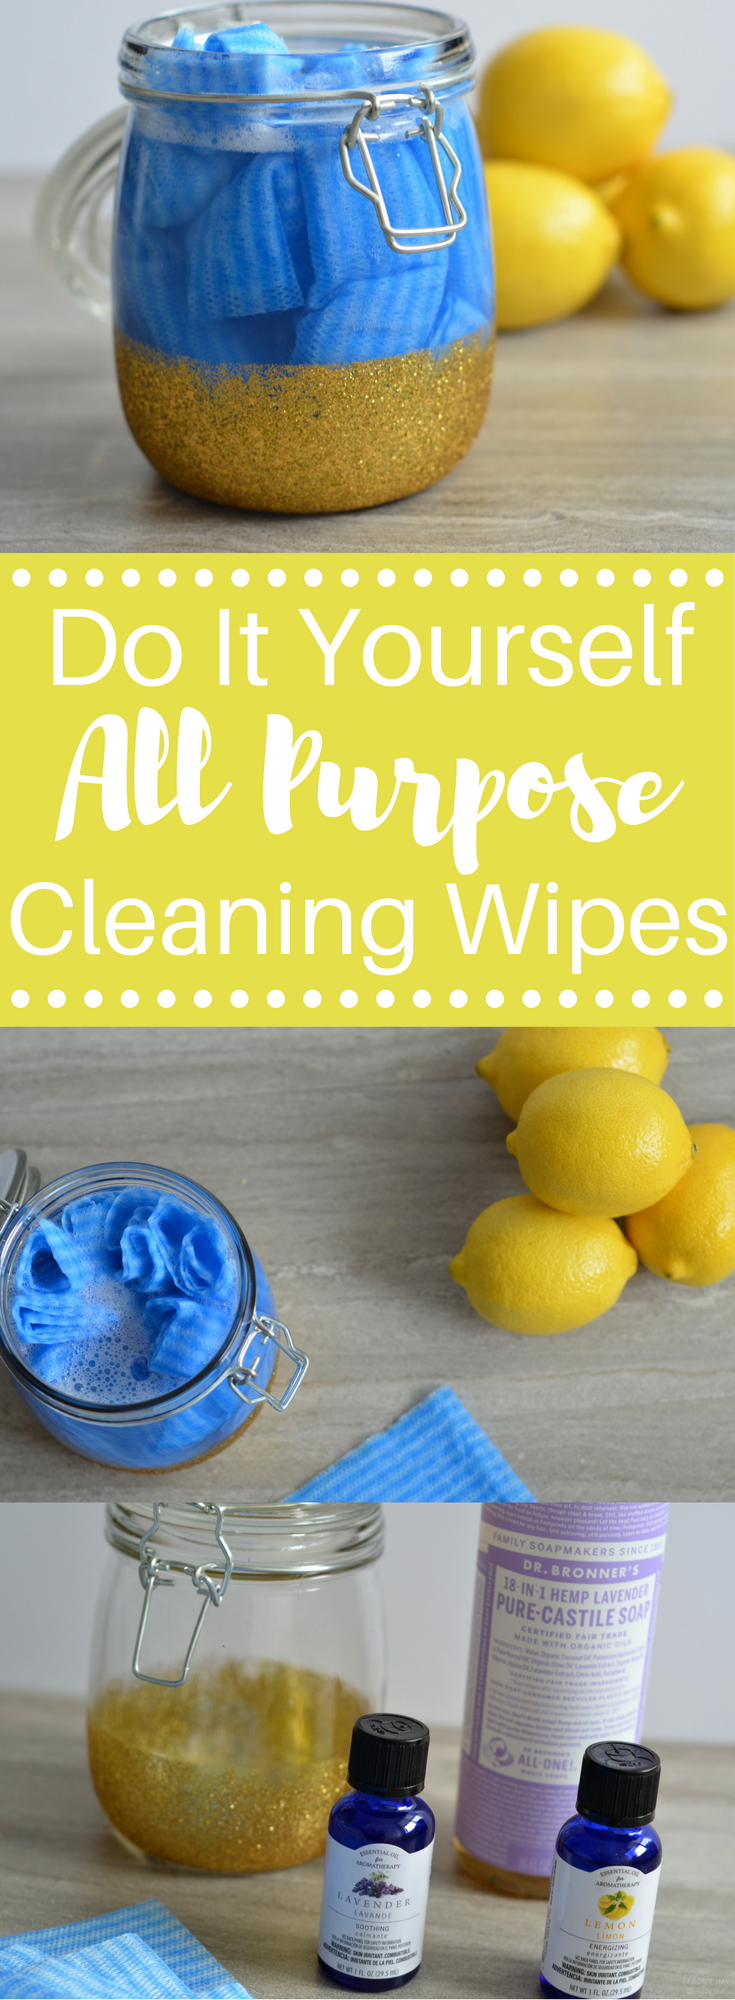 DIY All Purpose Cleaning Wipes Cleaning wipes, Cleaning